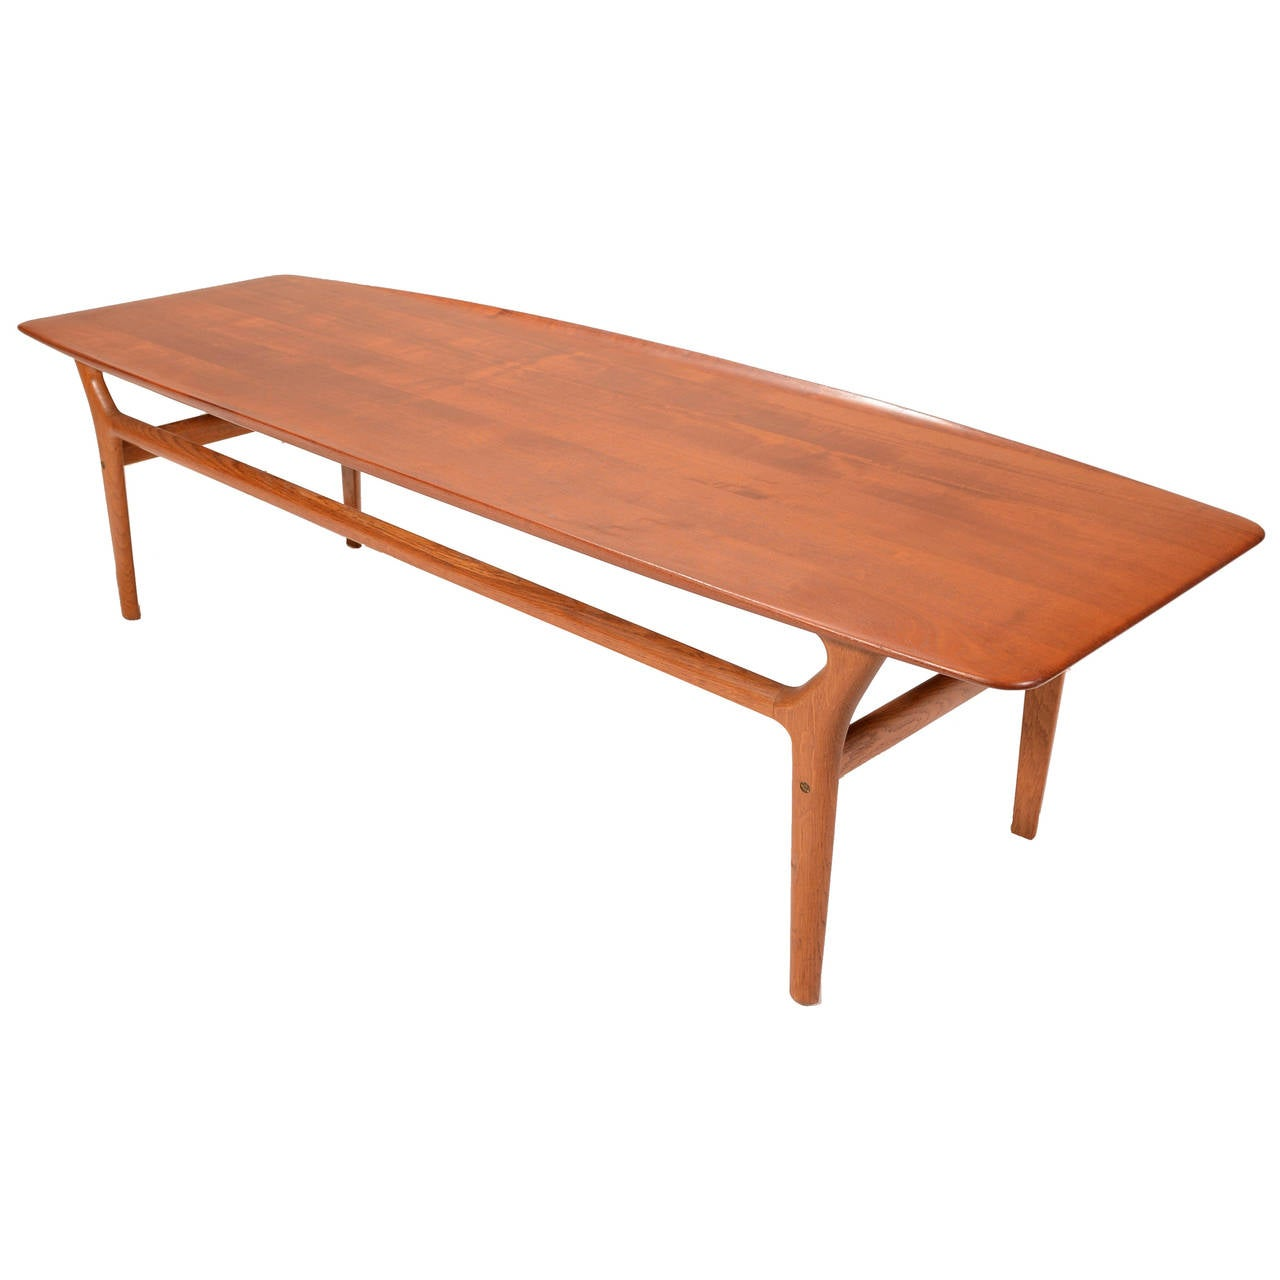 Solid teak and oak coffee table by kurt stervig for jason m belfabrik for sale at 1stdibs Solid teak coffee table